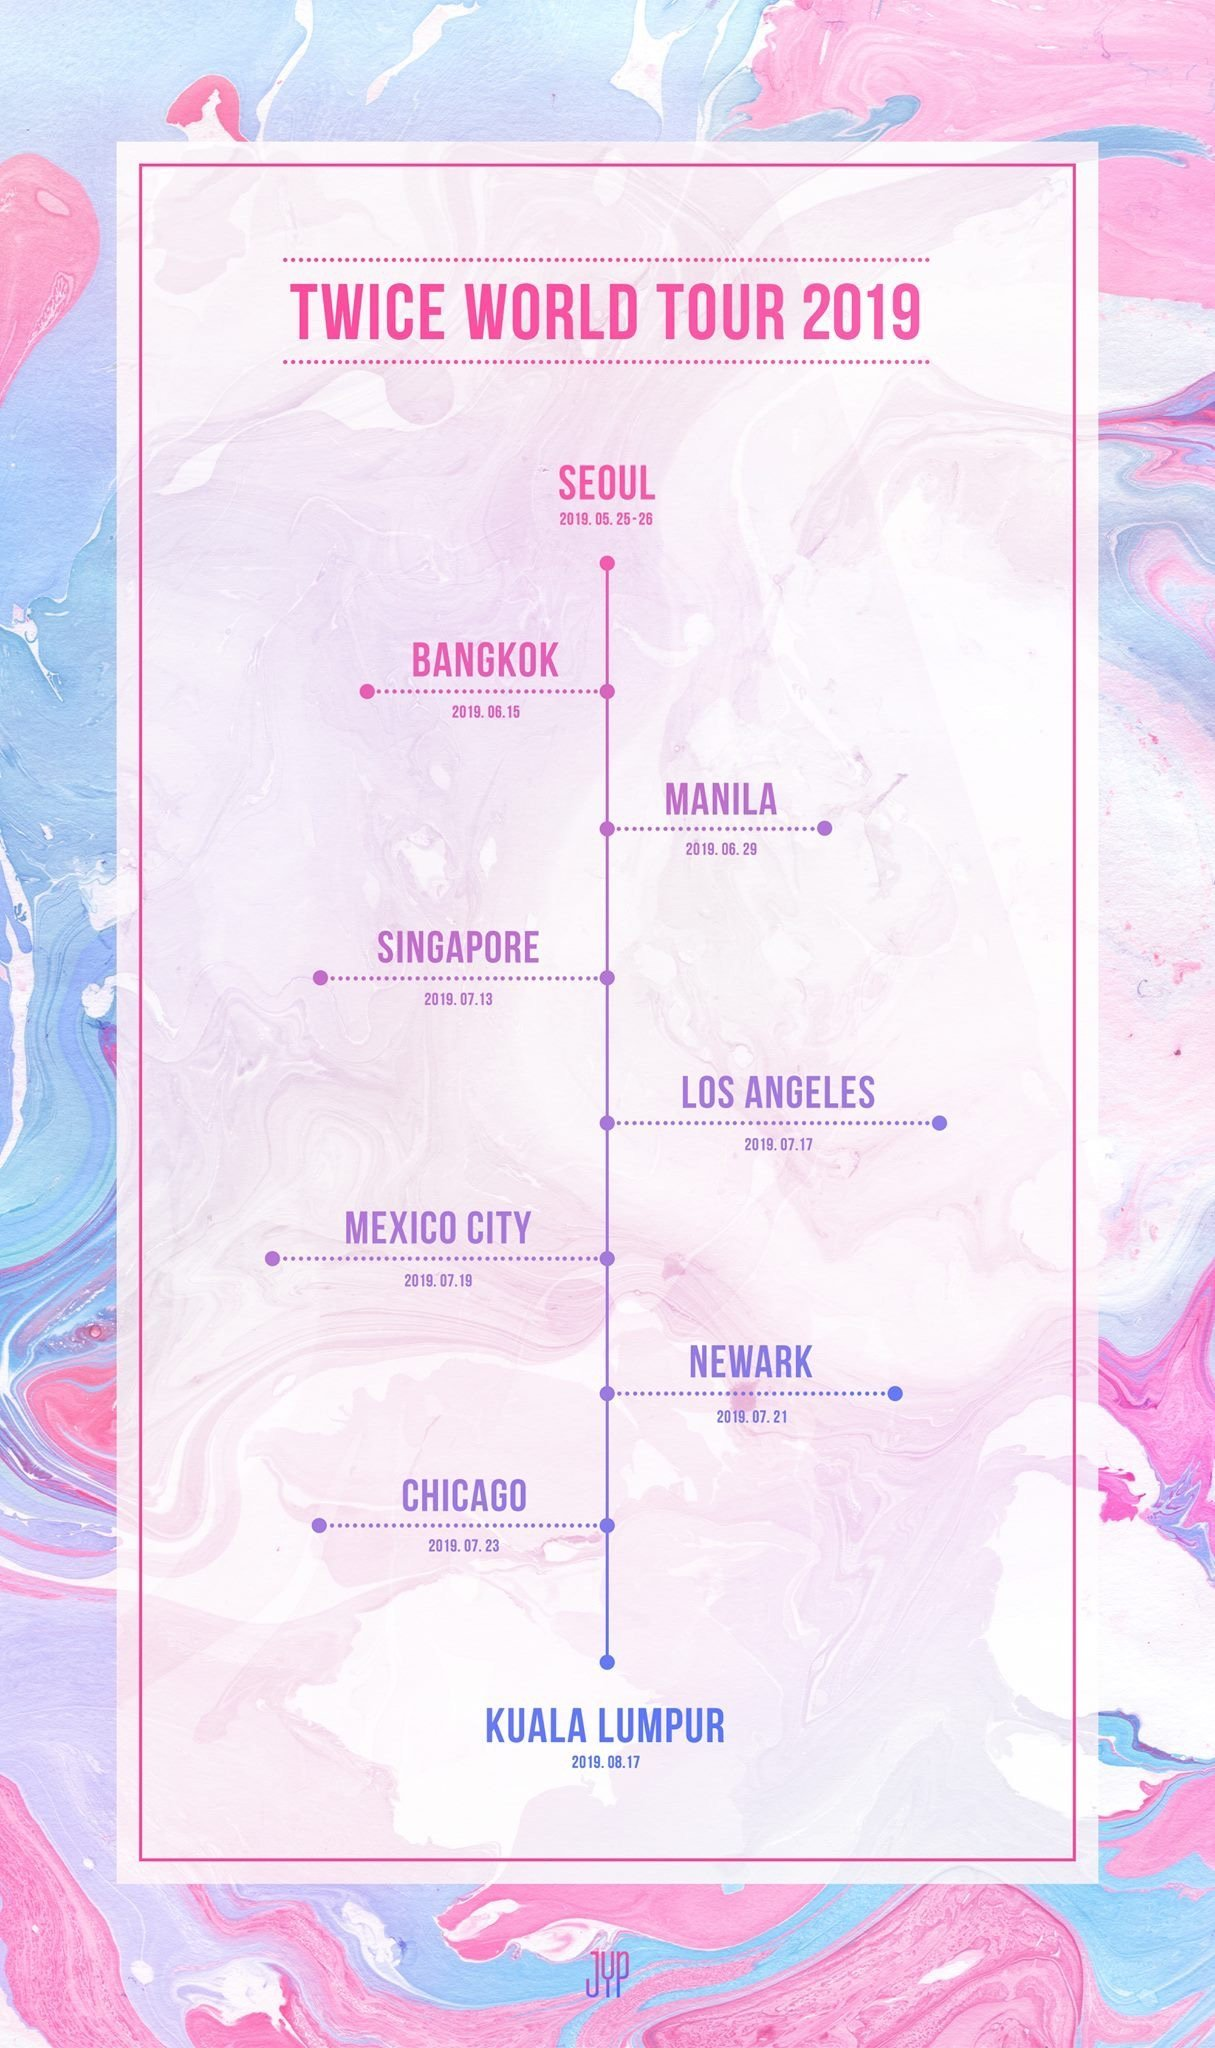 Ticketing Information released for TWICE 2019 World Tour